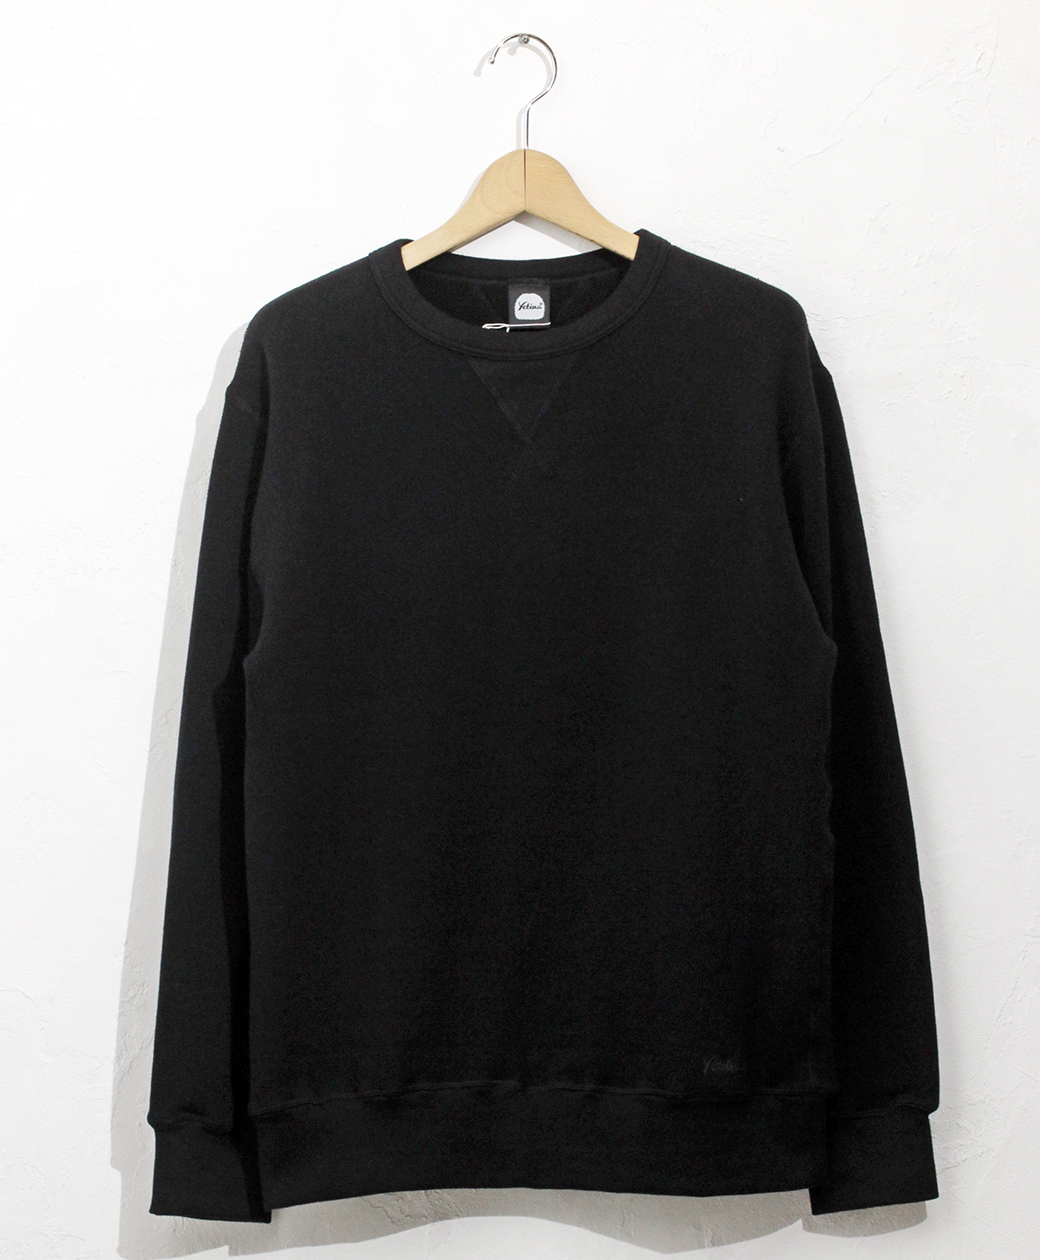 yetina Allseason cotton sweat shirt(black)